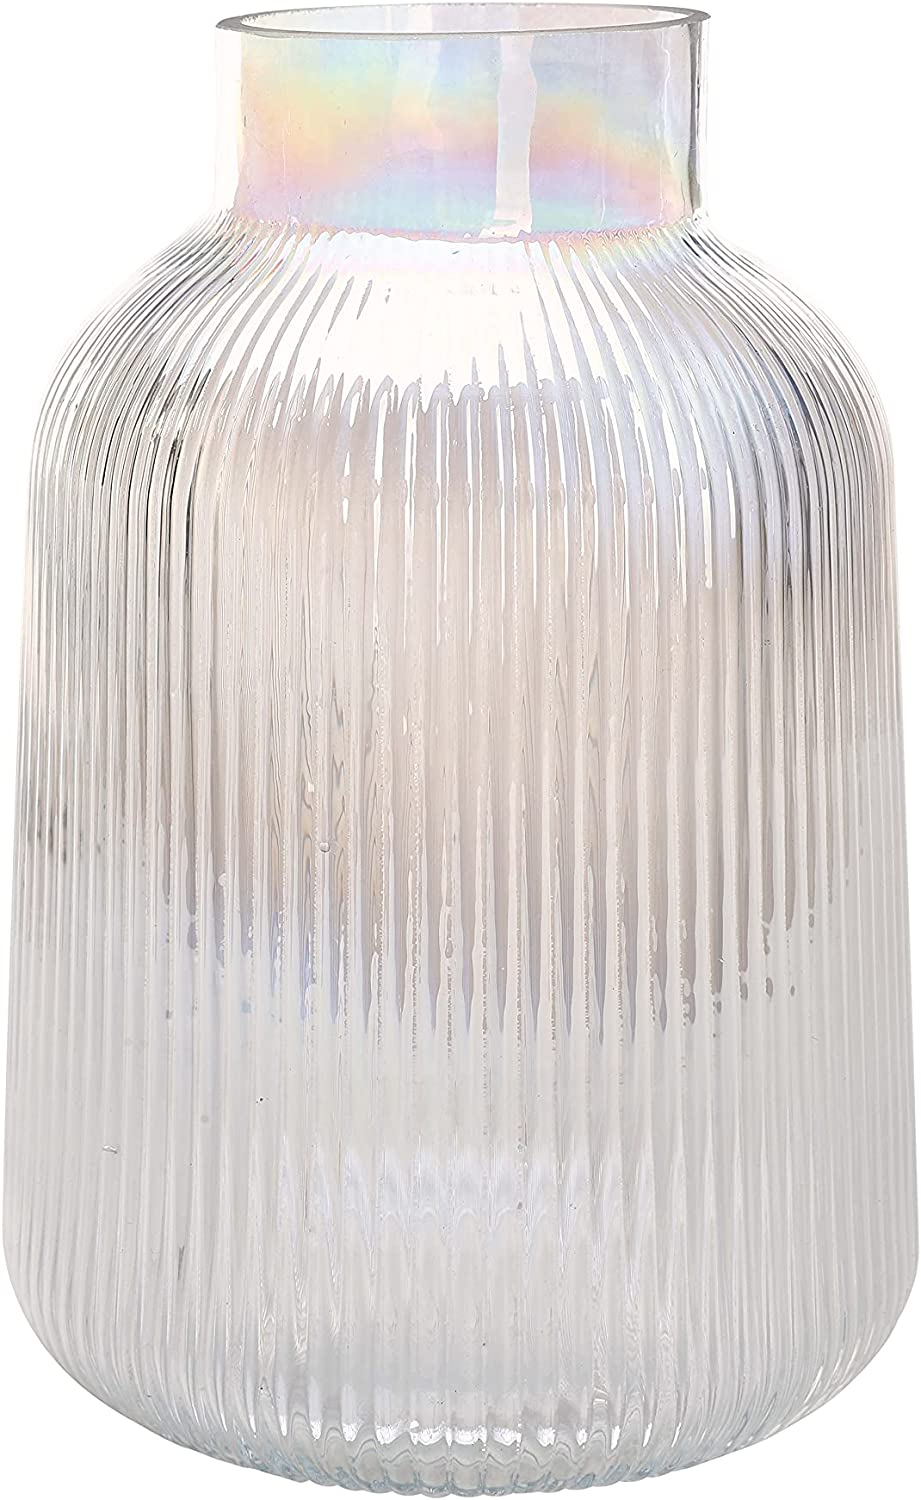 DN DECONATION 8 Inch Glass Vase for Flowers, Clear Glass Vase, Round Iridescent Vase, Clear Vases for Centerpiece, Decorative Vases for Home, Wedding, Farmhouse Decor, Unique Creative Gift